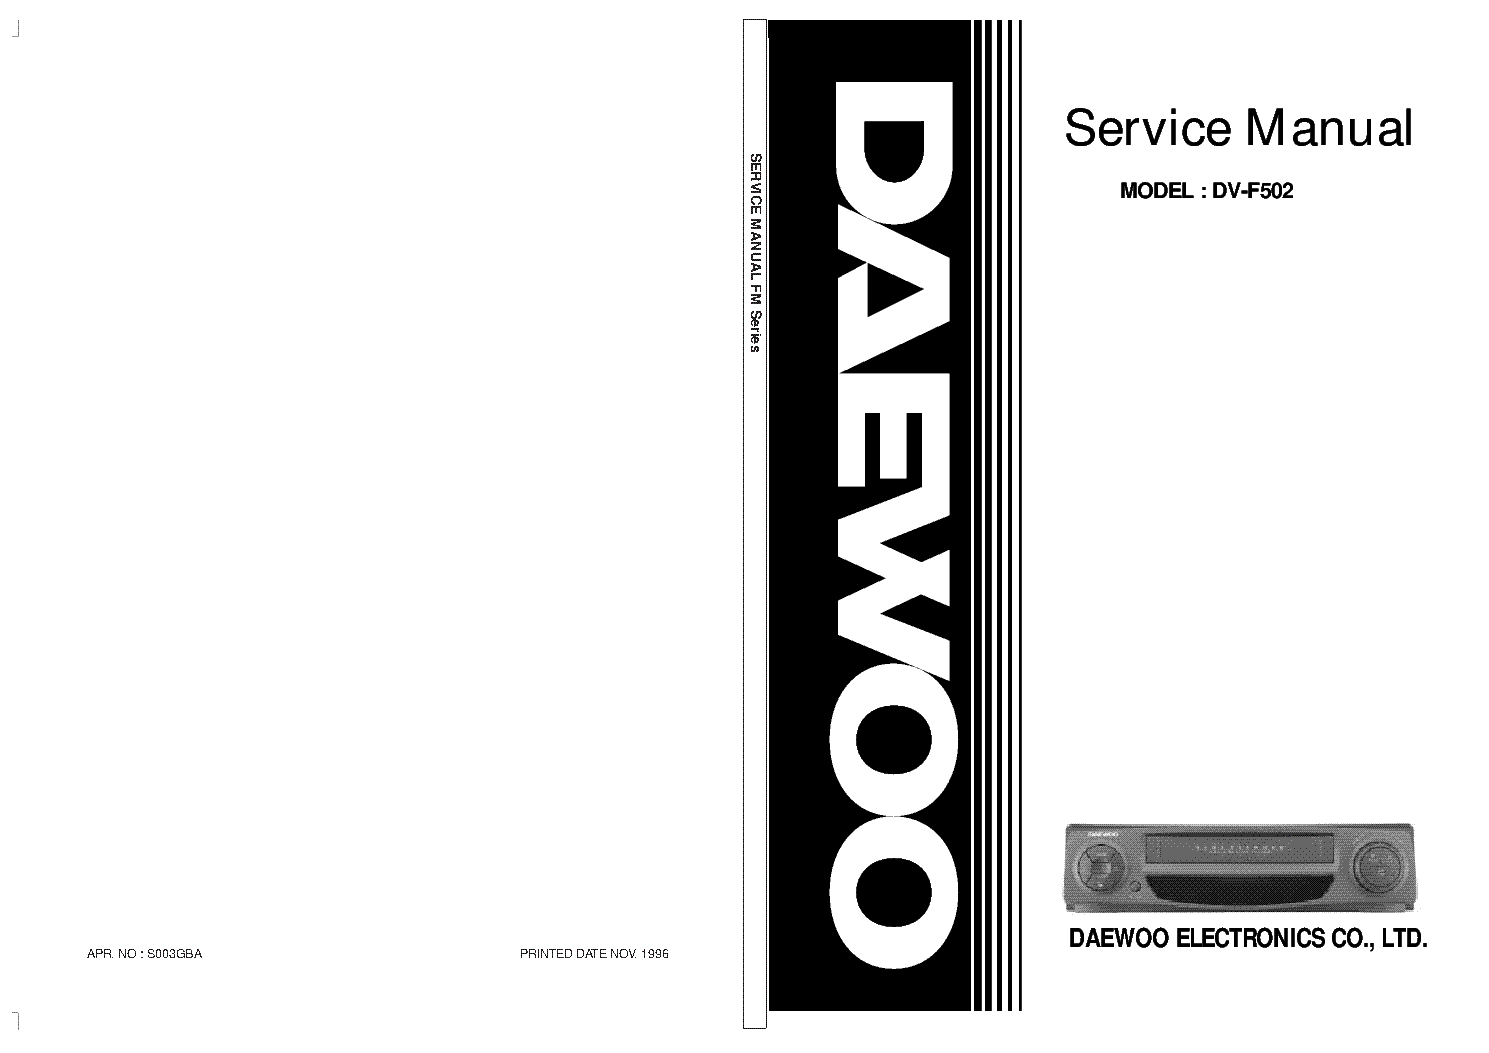 daewoo dv f502 vcr sm service manual download schematics eeprom rh elektrotanya com daewoo blue diamond vcr manual daewoo vcr dvd combo manual